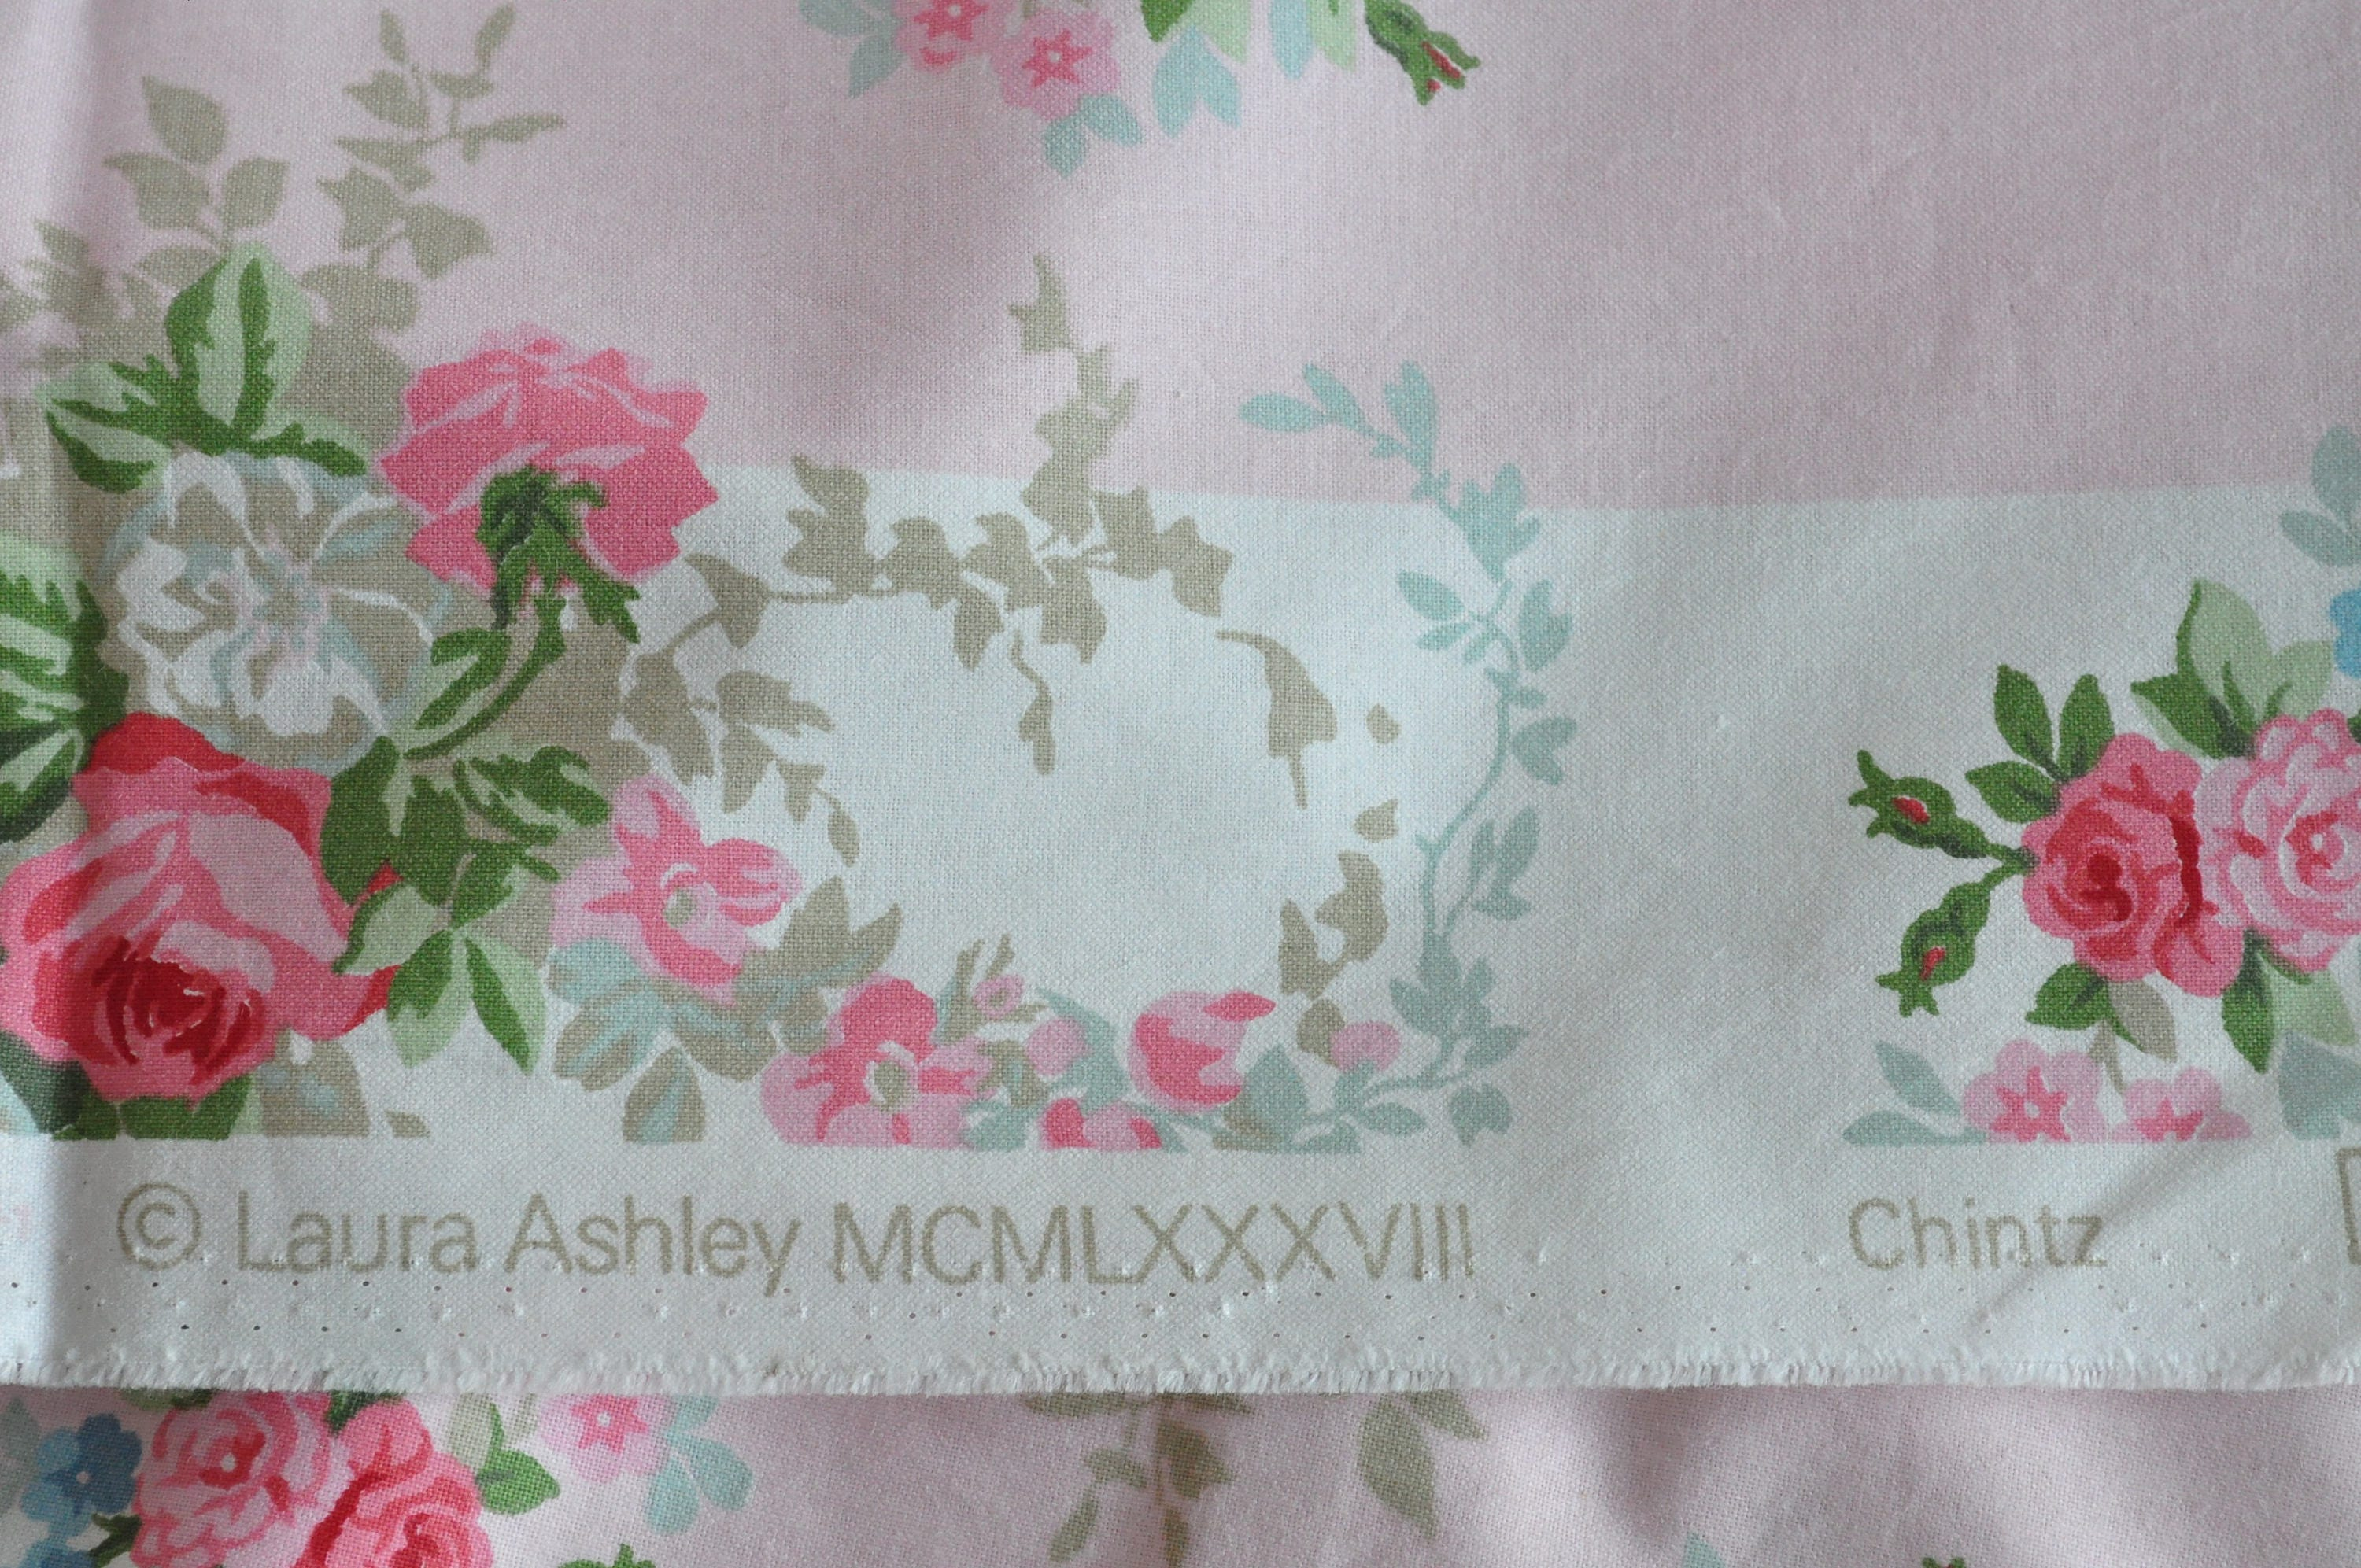 reserved reservedvintage laura ashley 39 chintz 39 fabric 1980s unused 2 metres reserved from. Black Bedroom Furniture Sets. Home Design Ideas